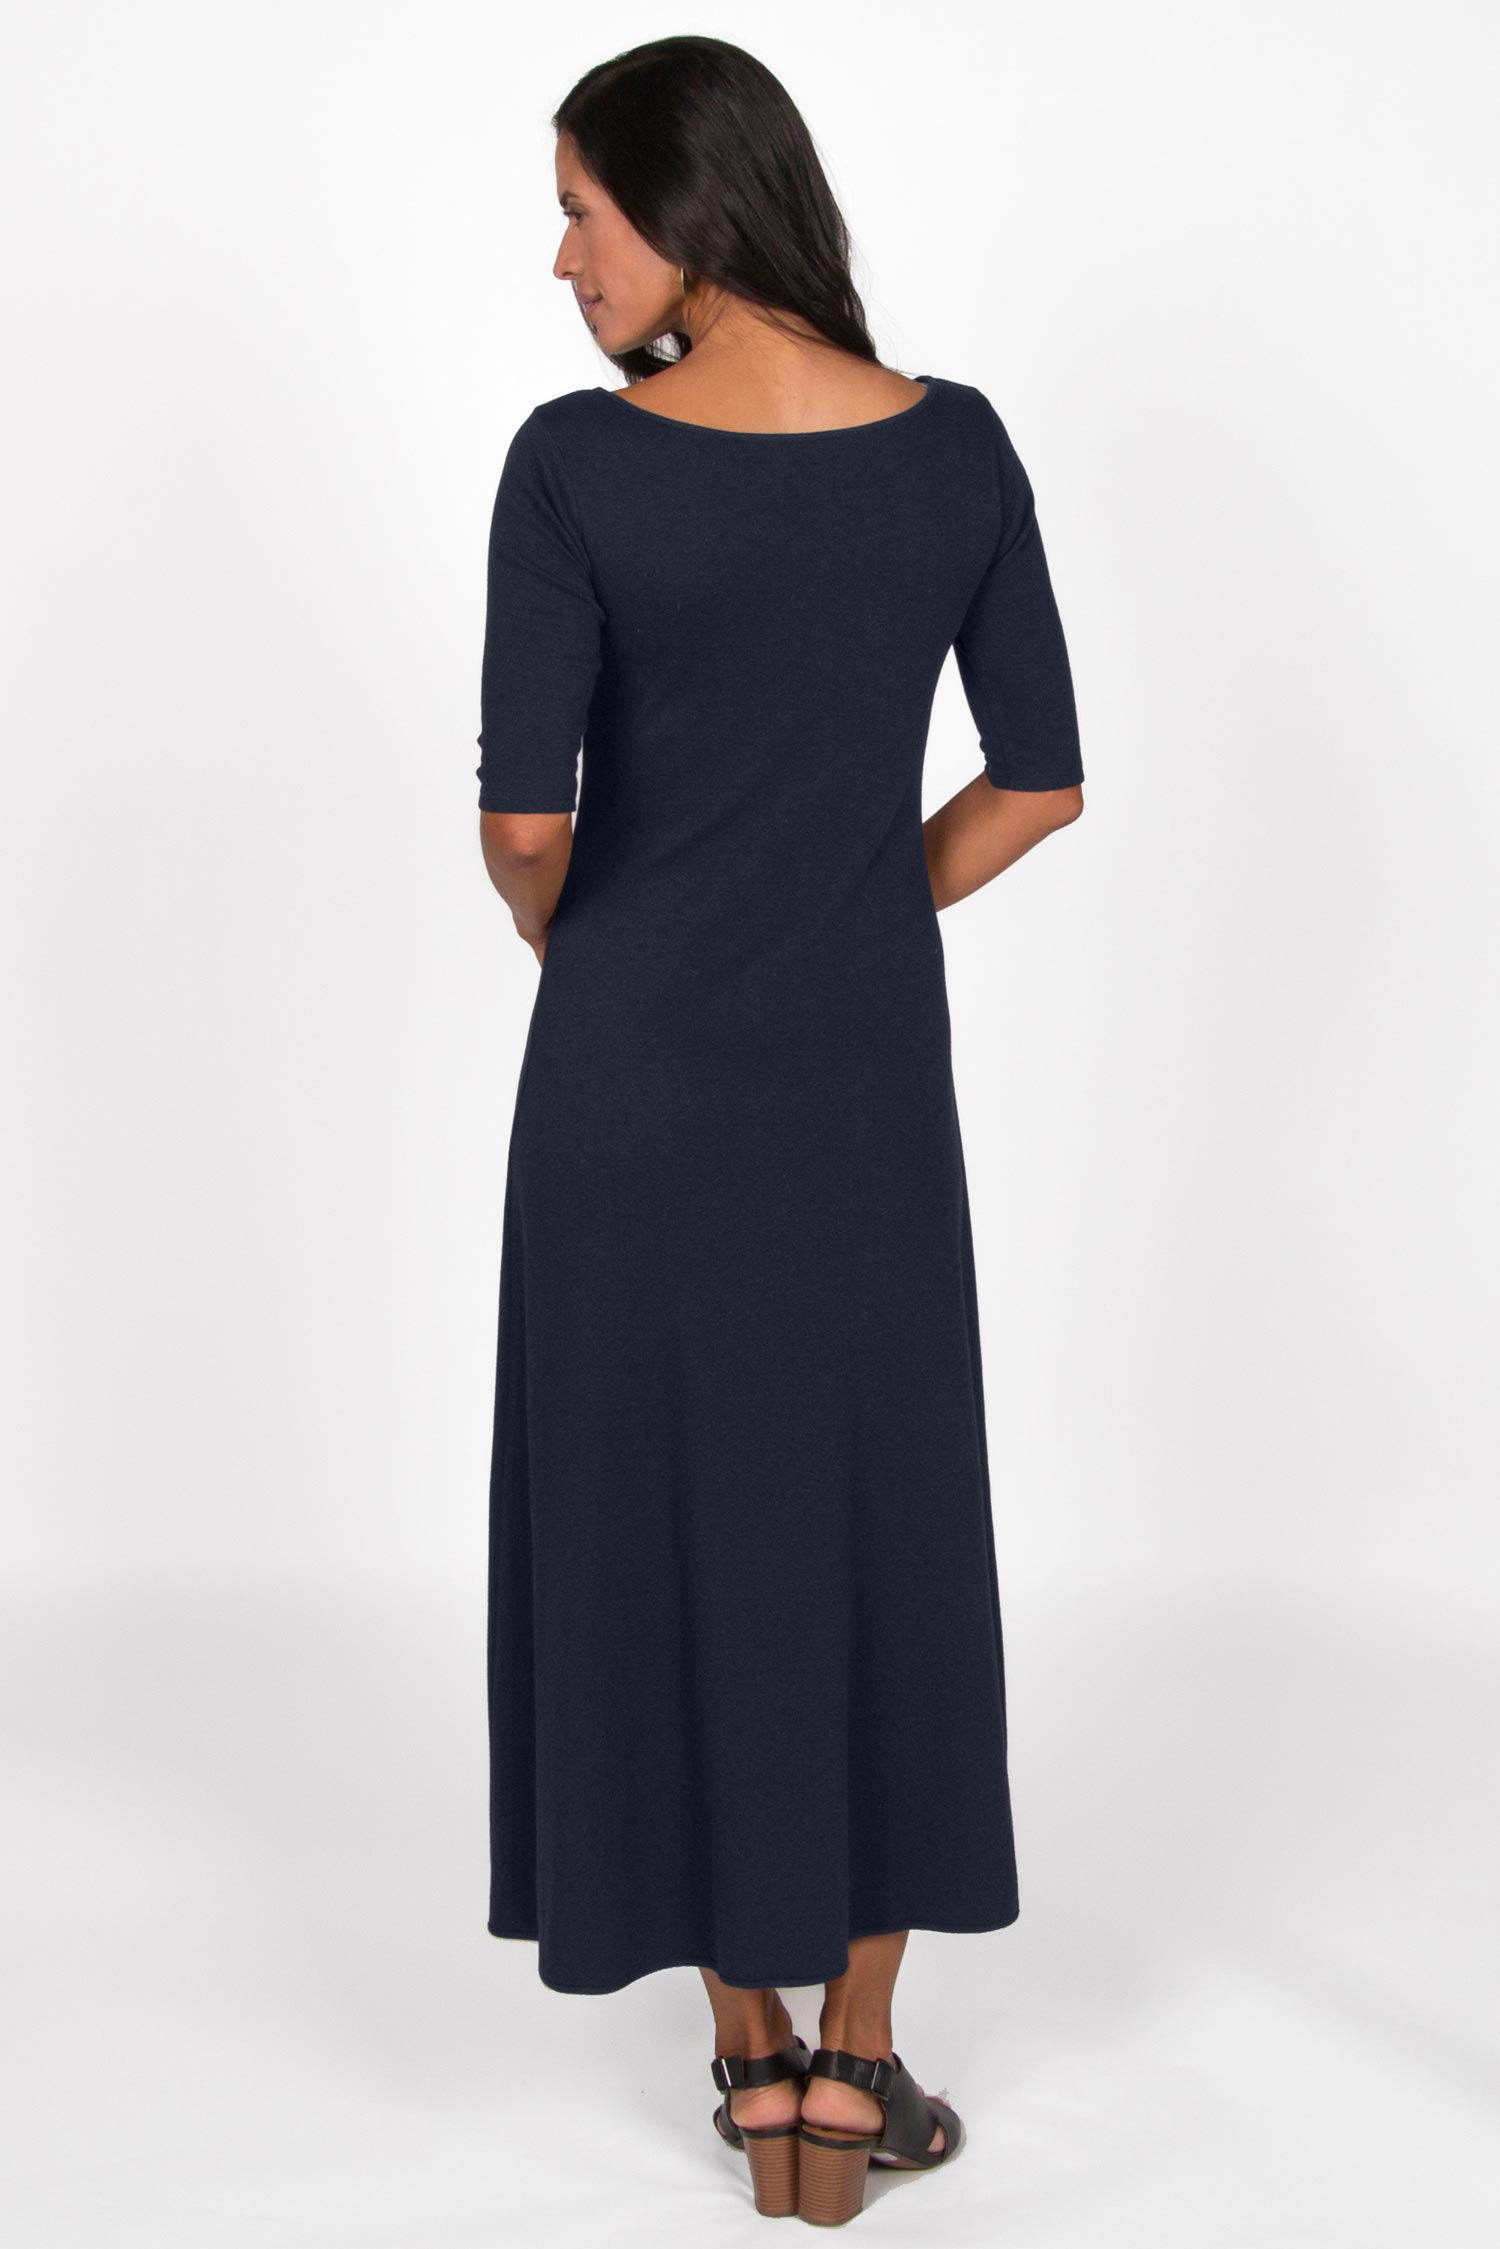 Womens Elbow Sleeve Boatneck Dress | Navy | Organic Cotton Clothing